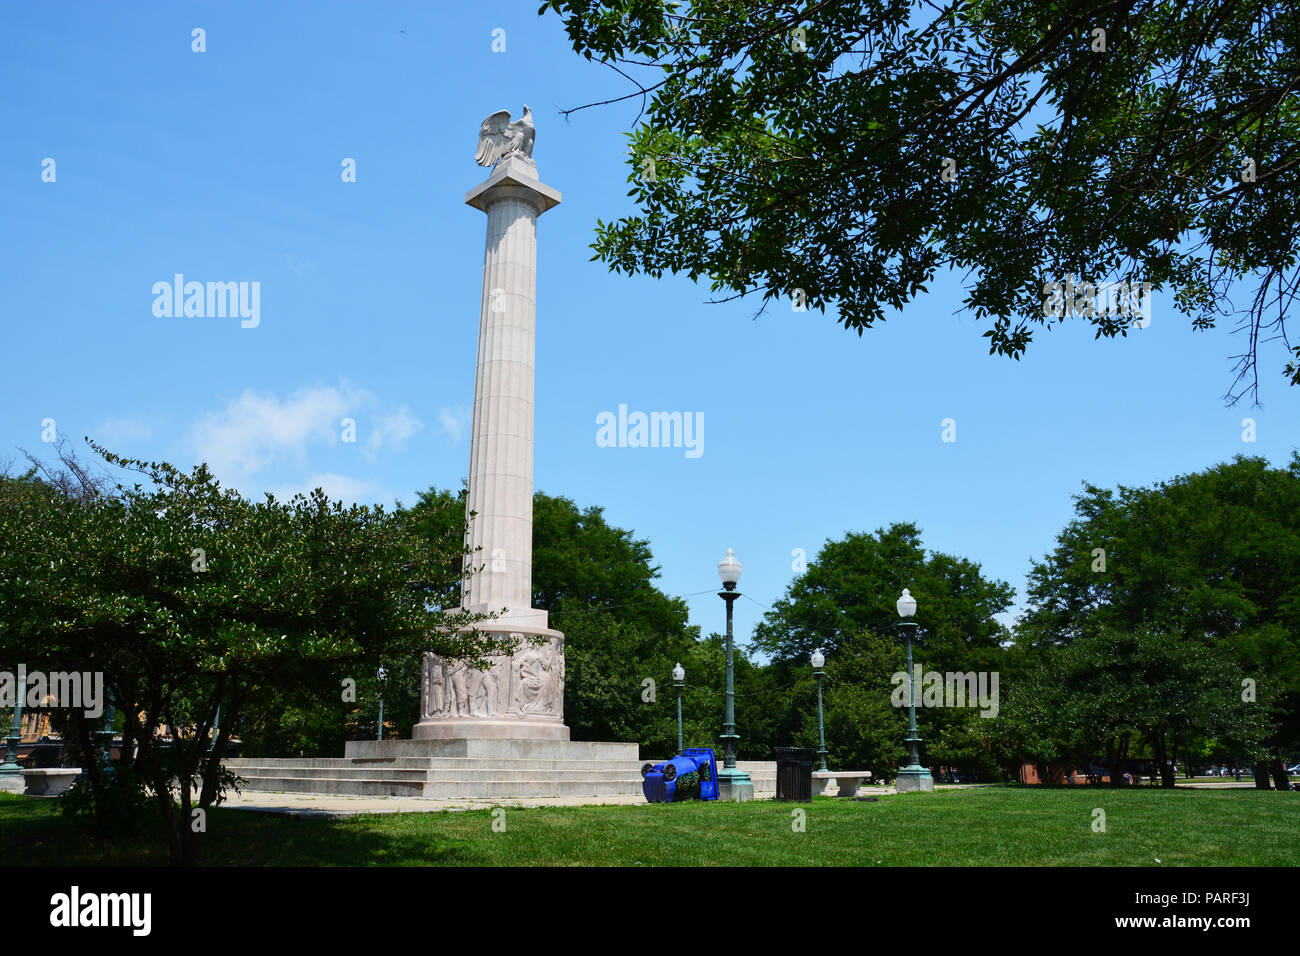 Illinois Centennial Monument dedicated at the end of WWI in 1918 to celebrate the first 100-years of statehood. Illinois gained statehood Dec 3, 1818. Stock Photo